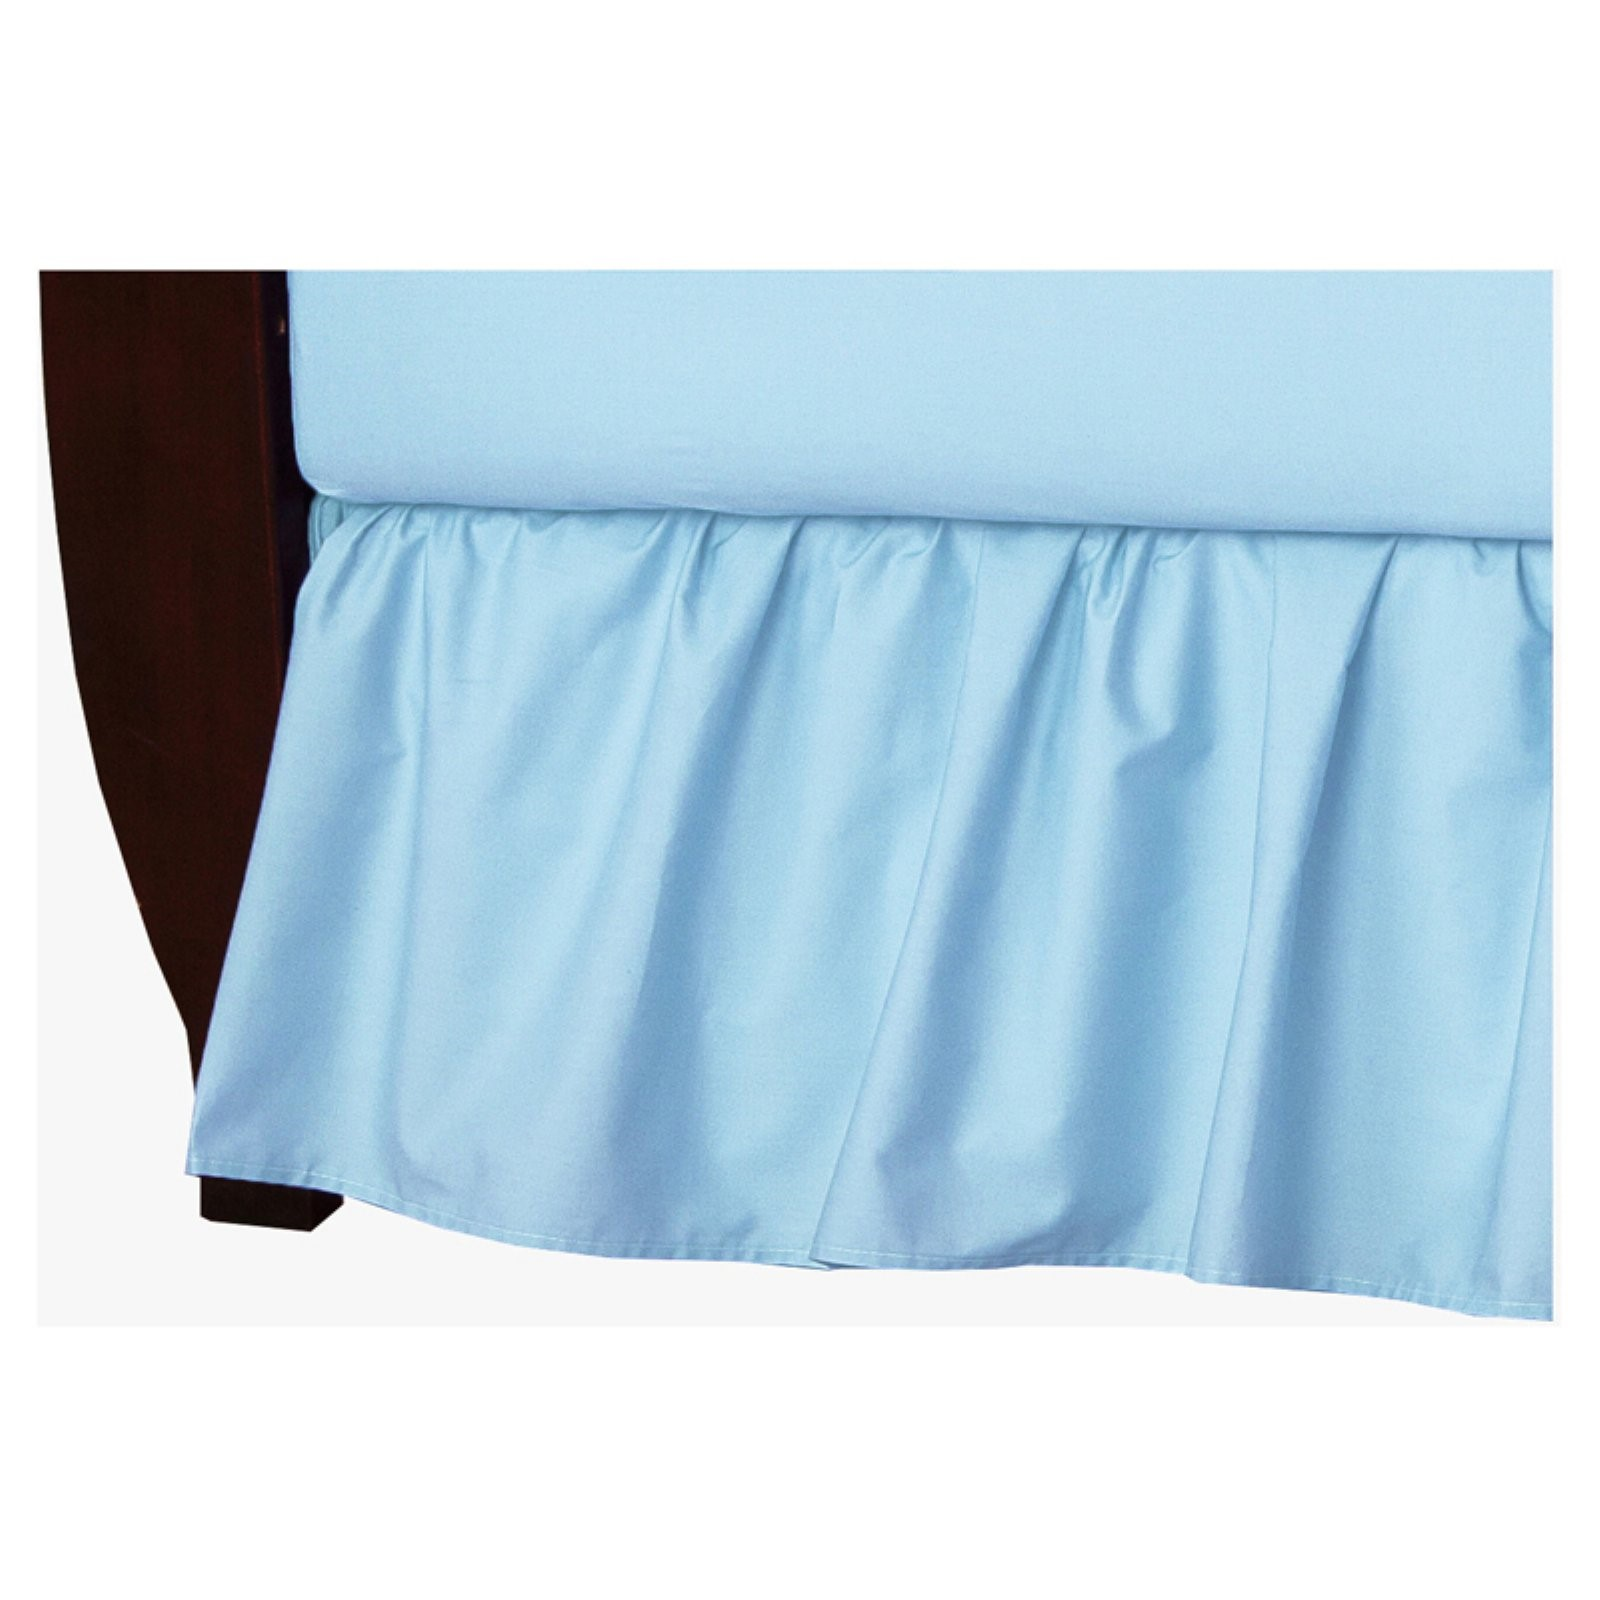 Percale Crib Bedskirt by American Baby Company by Tl Care